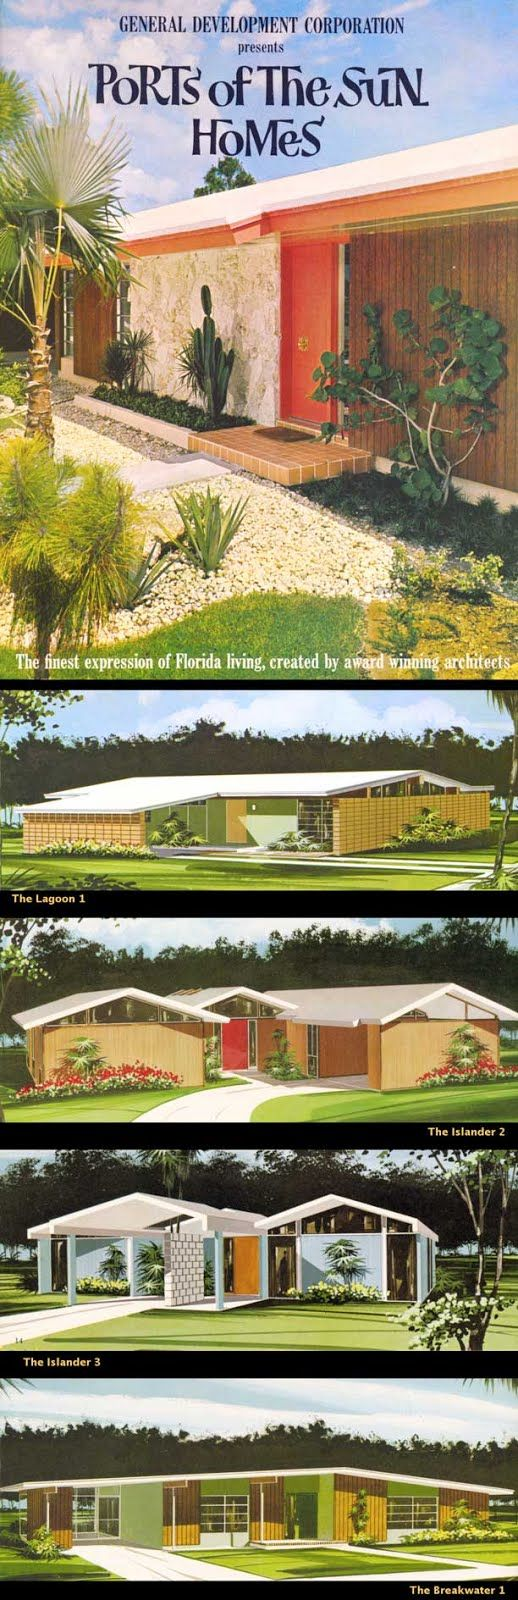 Mid century modern exterior house colors - 137 Best Images About Mid Century Modern Bungalow Ideas For 1950s Cinder Block Ranch Home In Flg On Pinterest